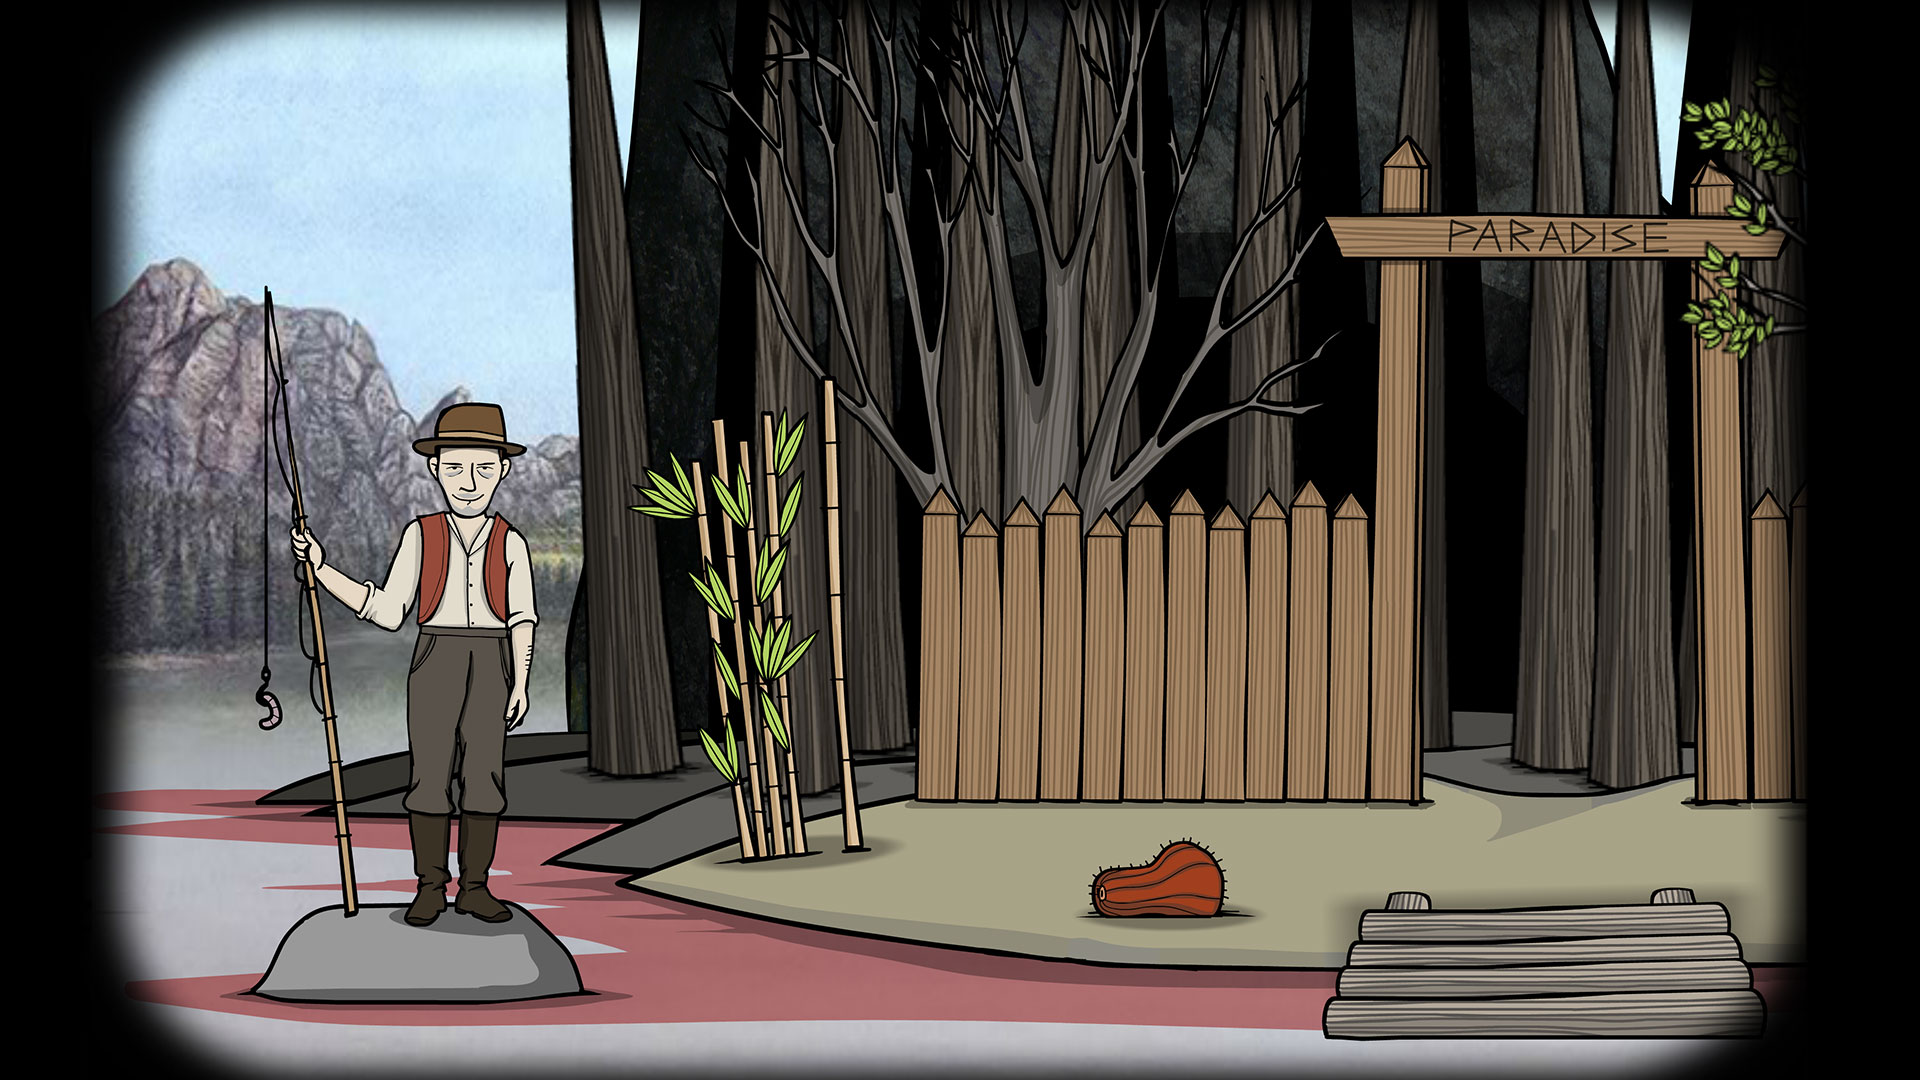 Rusty Lake Paradise (Steam key / Region Free)